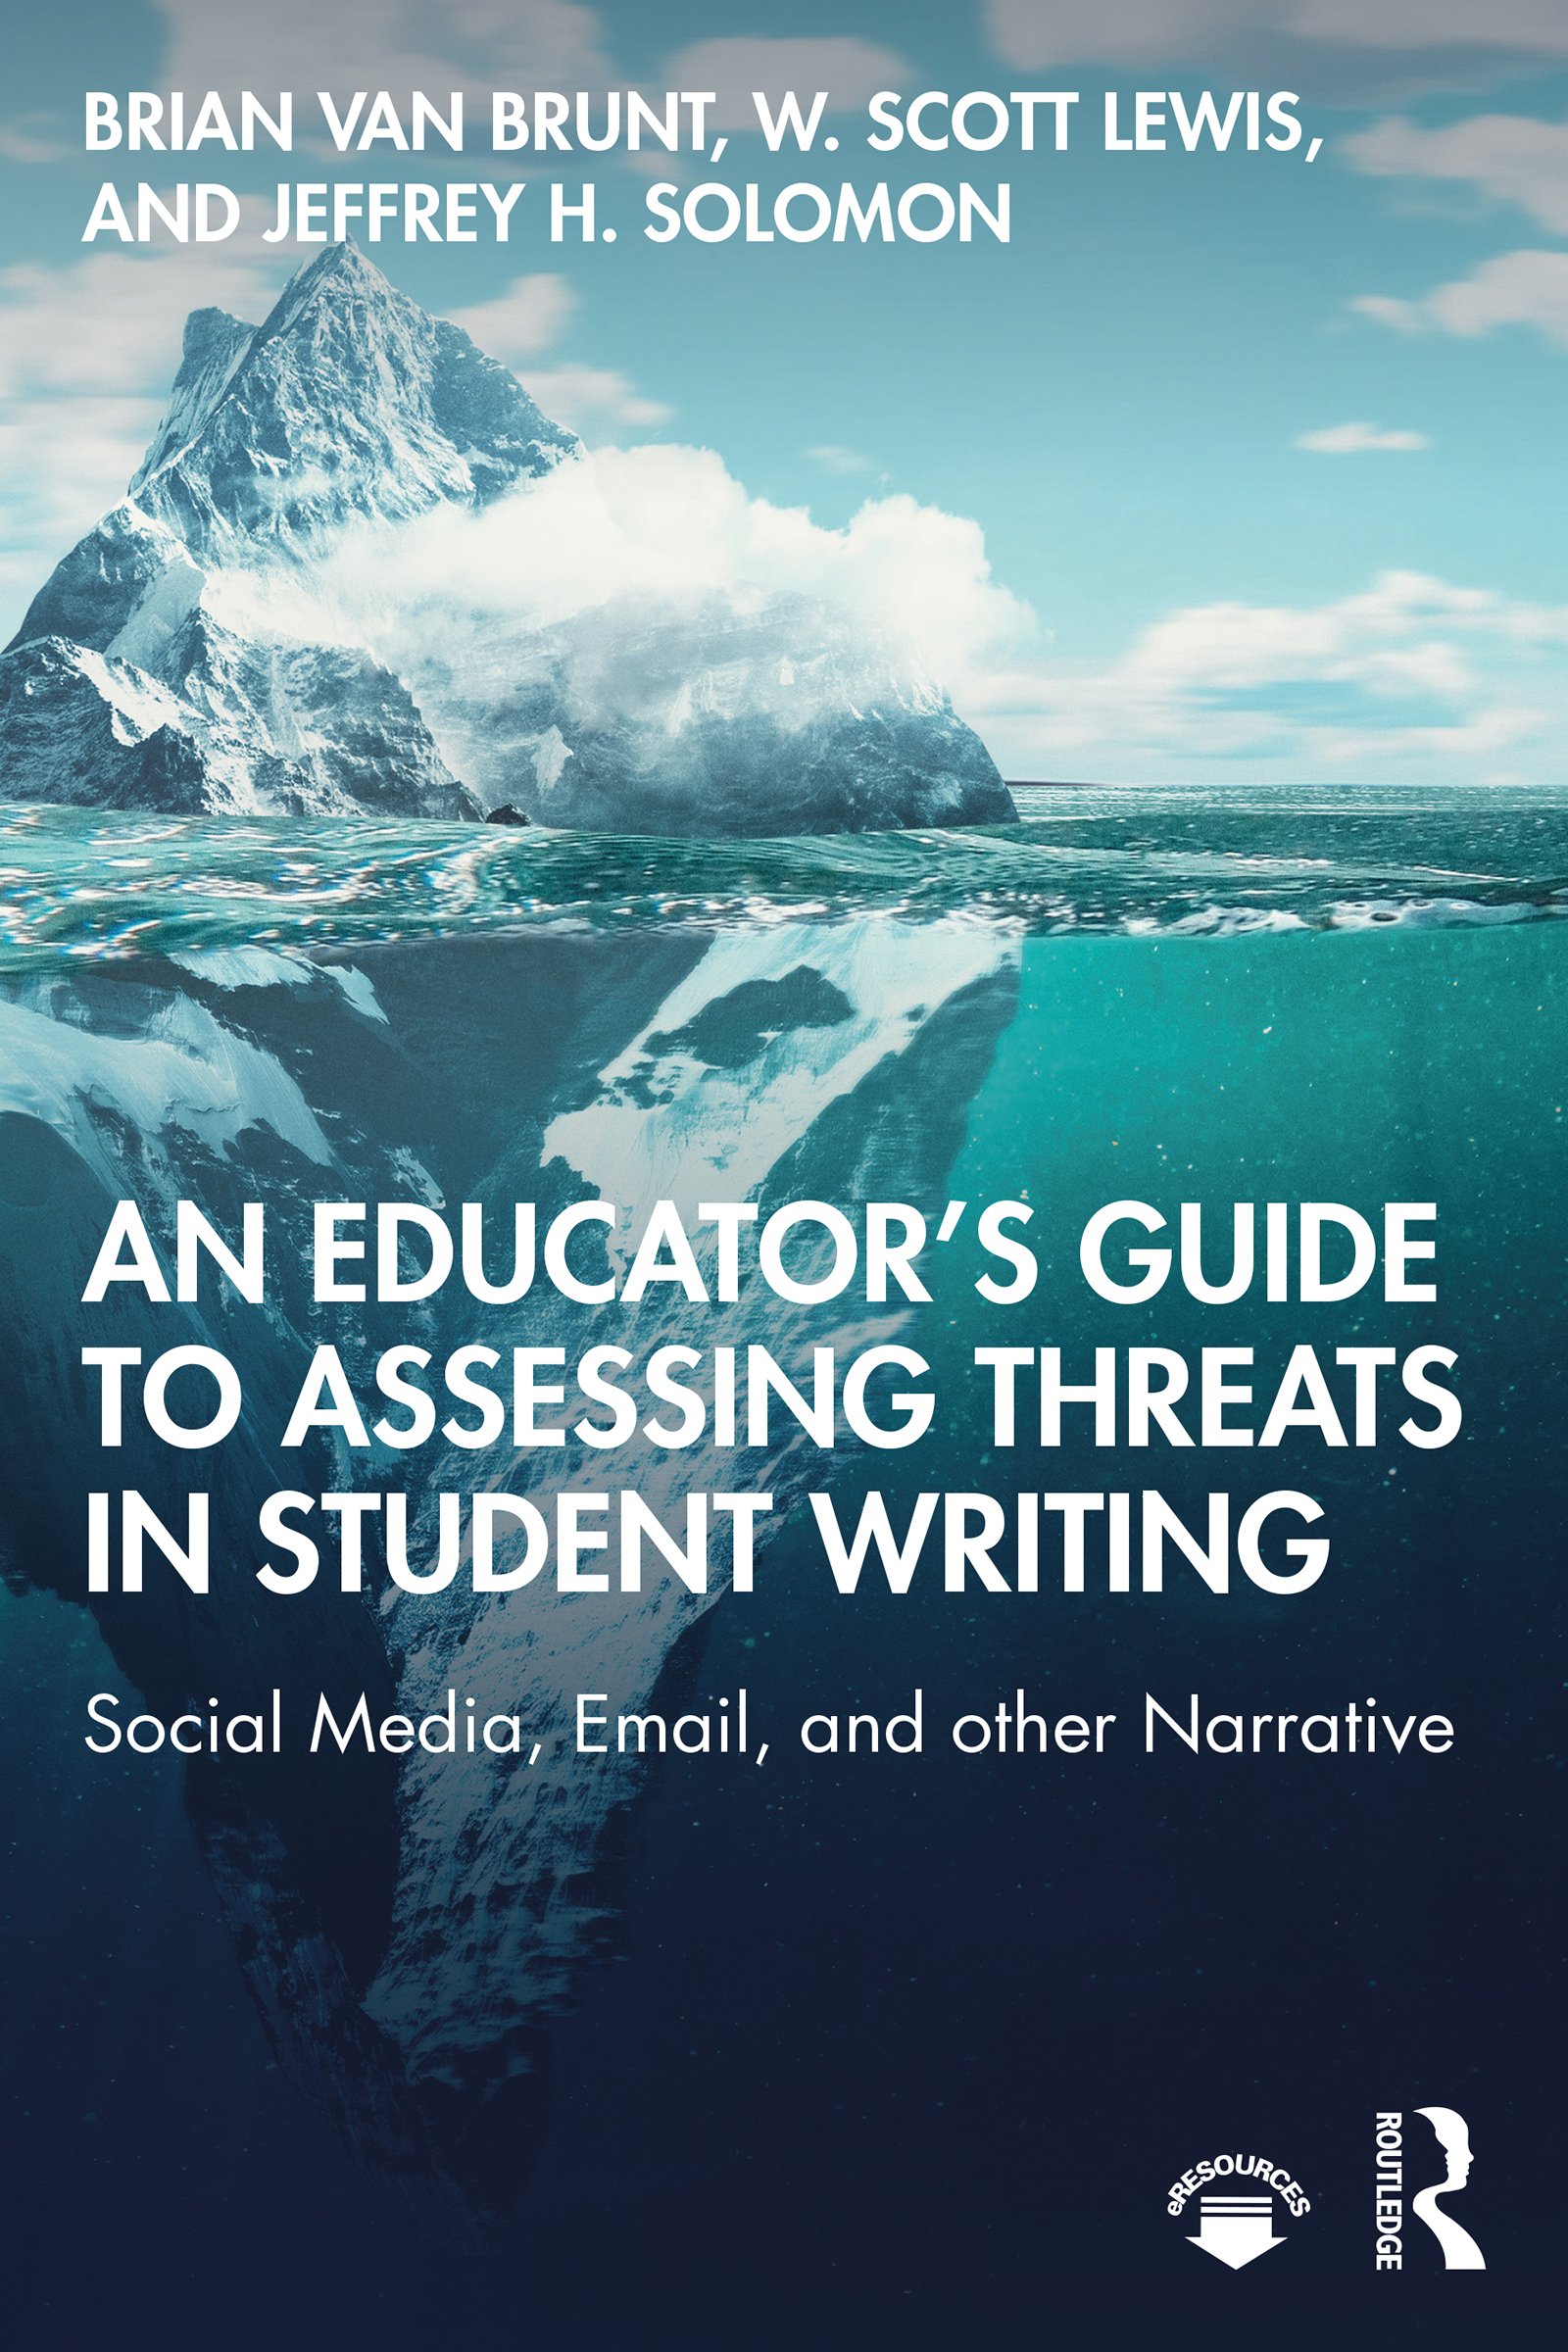 An Educator's Guide to Assessing Threats in Student Writing